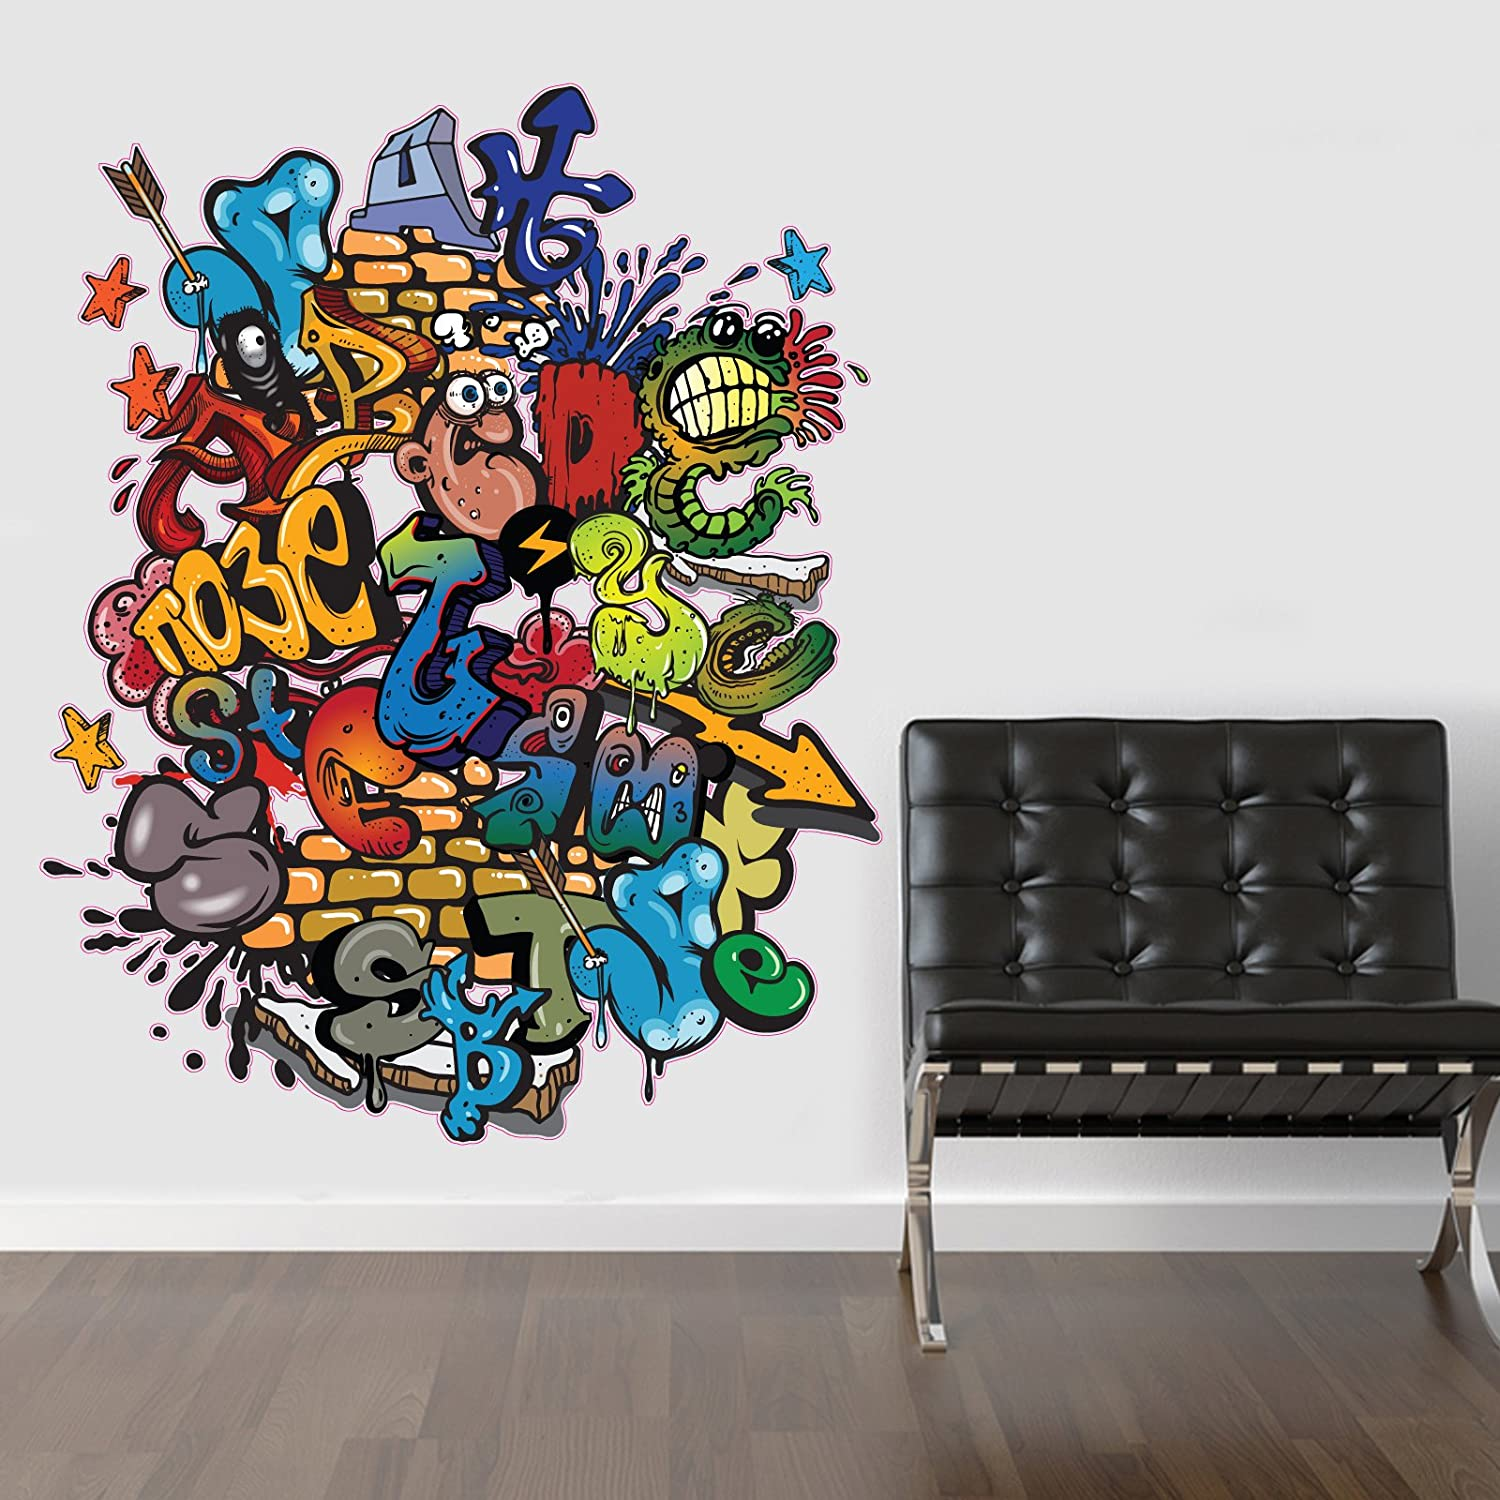 VC Designs Ltd TM LARGE Full Colour Graffiti Wall Sticker Wall